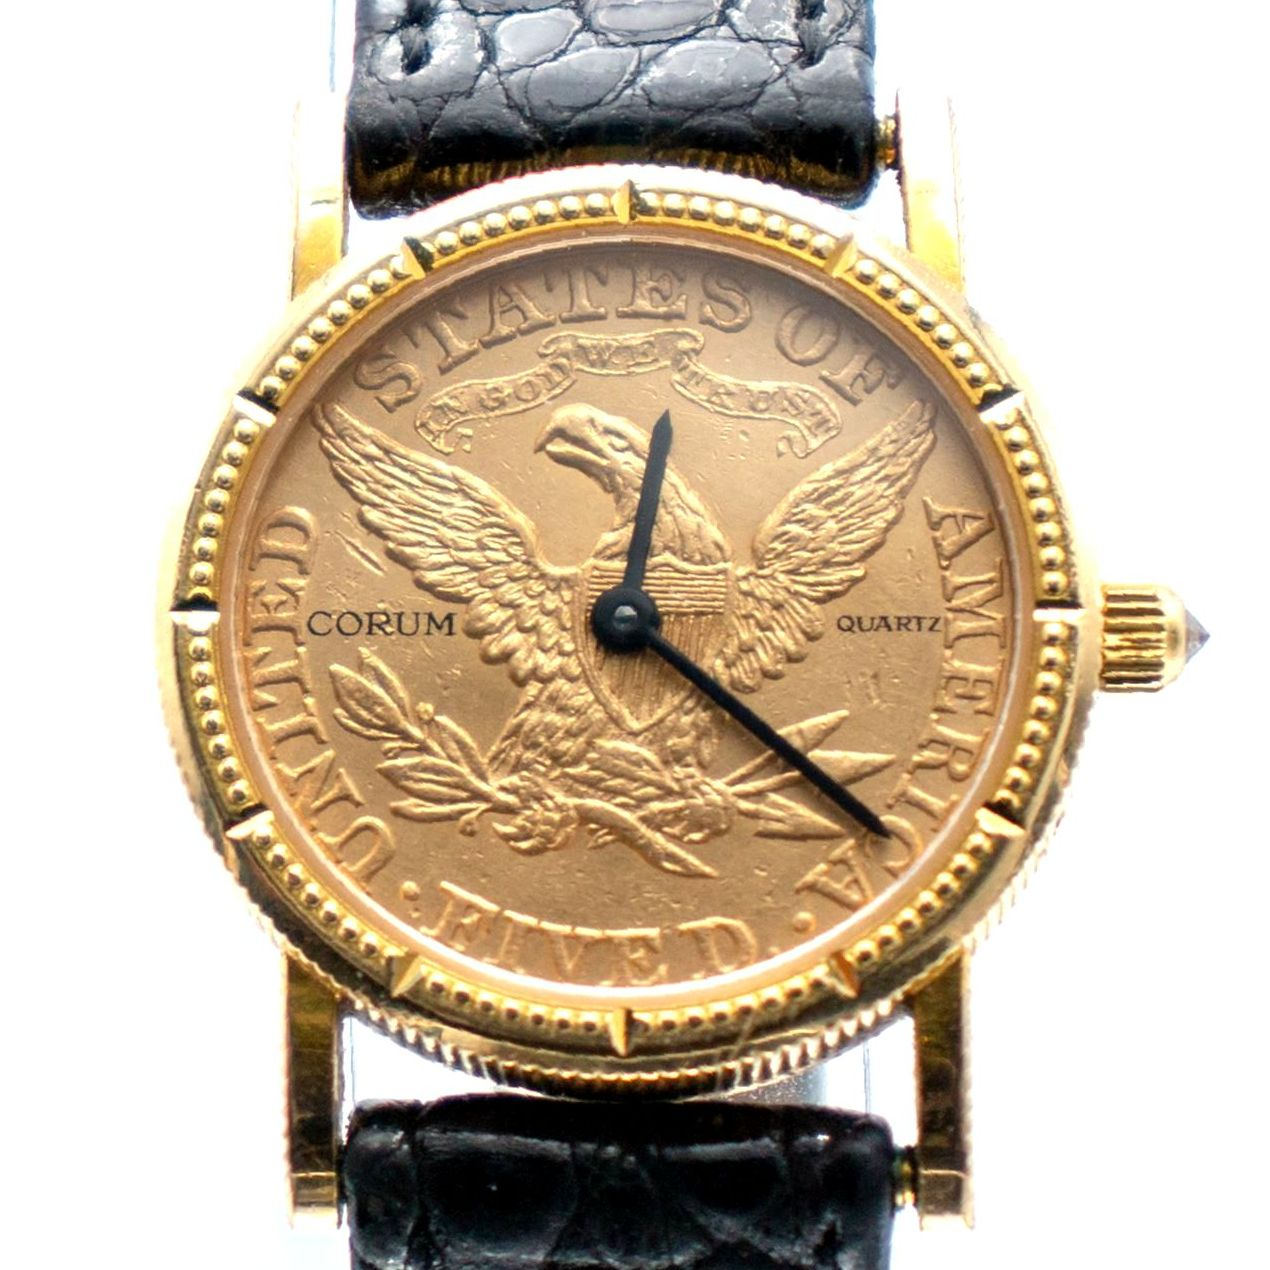 Vintage Corum Heritage Ladies Coin Watch  - 22K 1881 $5 Gold Half Eagle